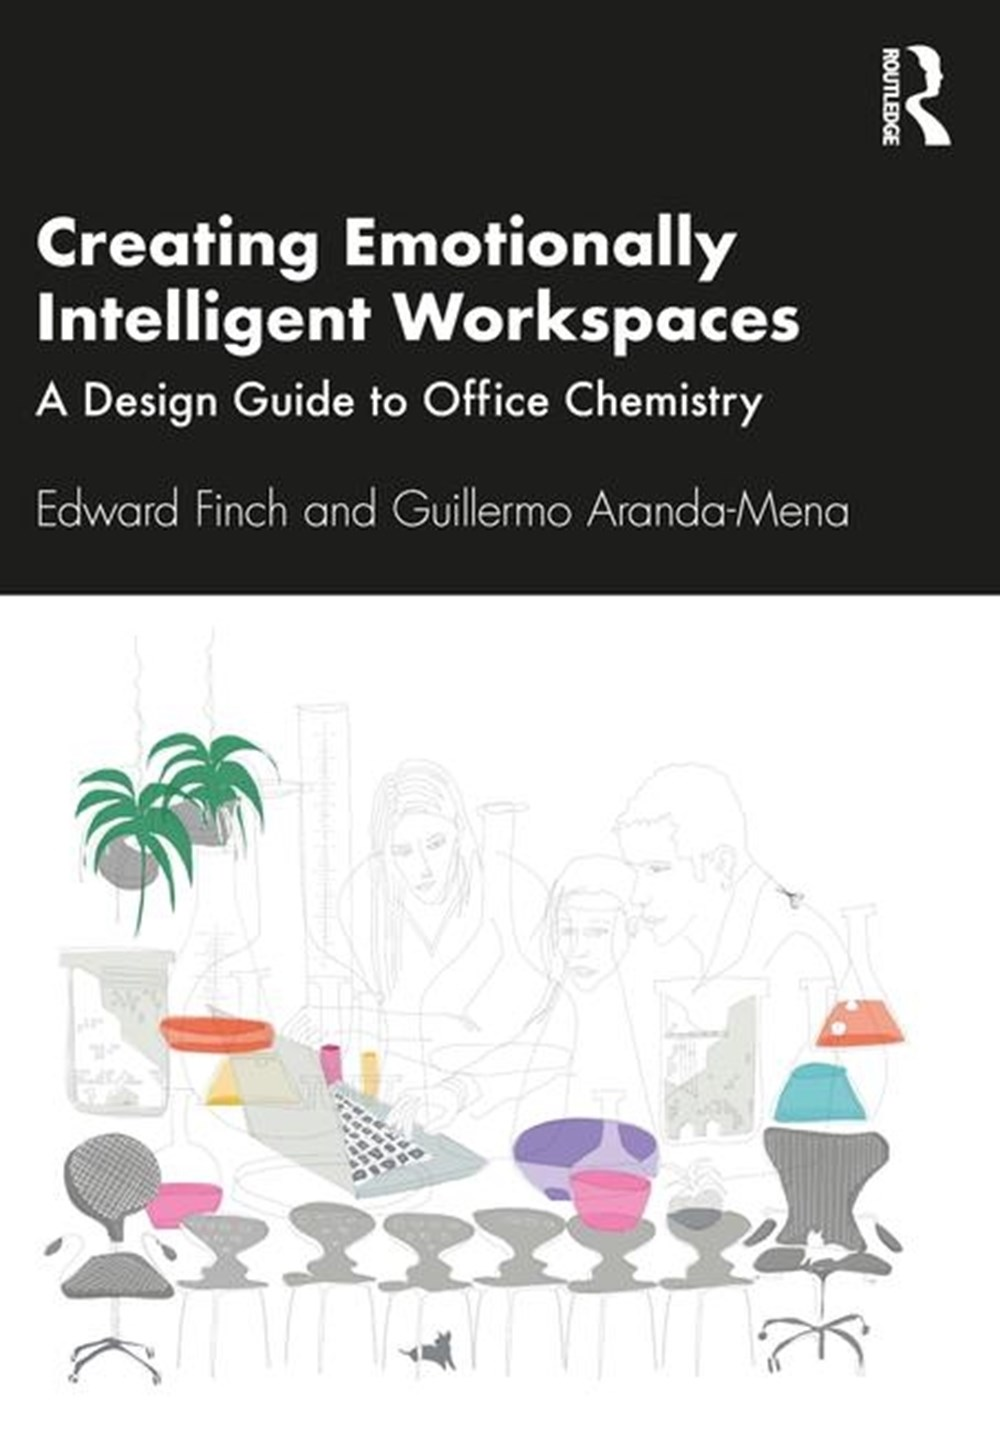 Creating Emotionally Intelligent Workspaces A Design Guide to Office Chemistry